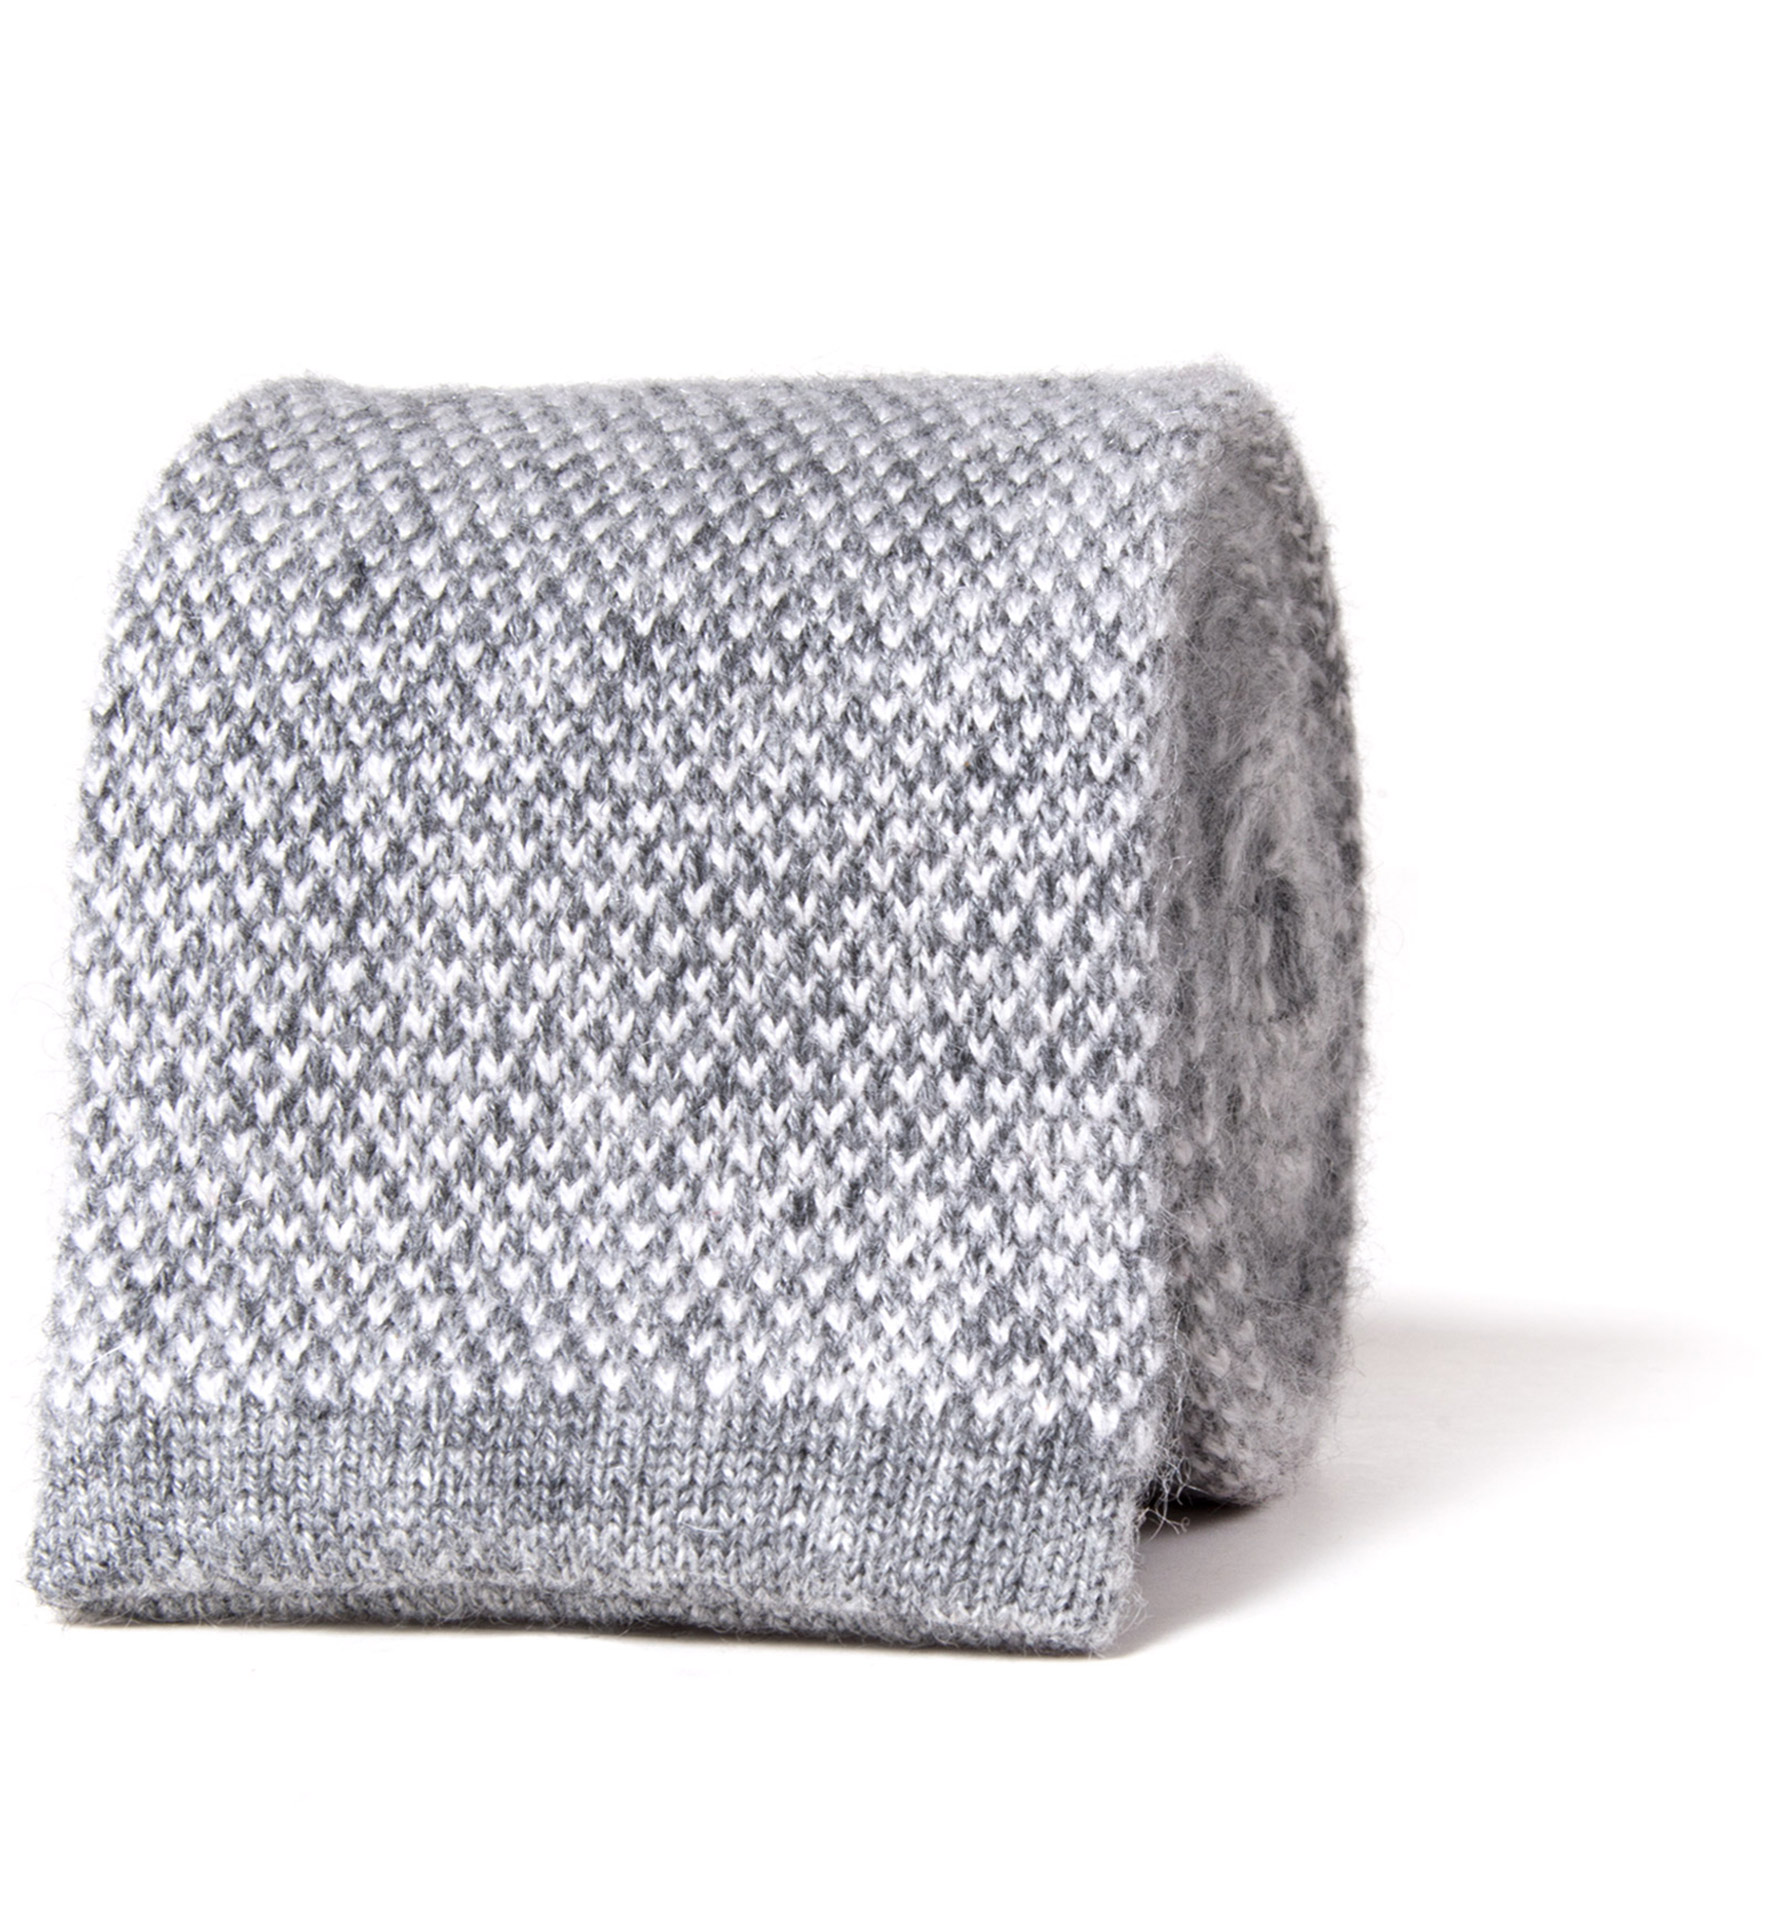 Zoom Image of Torino Grey Cashmere Knit Tie